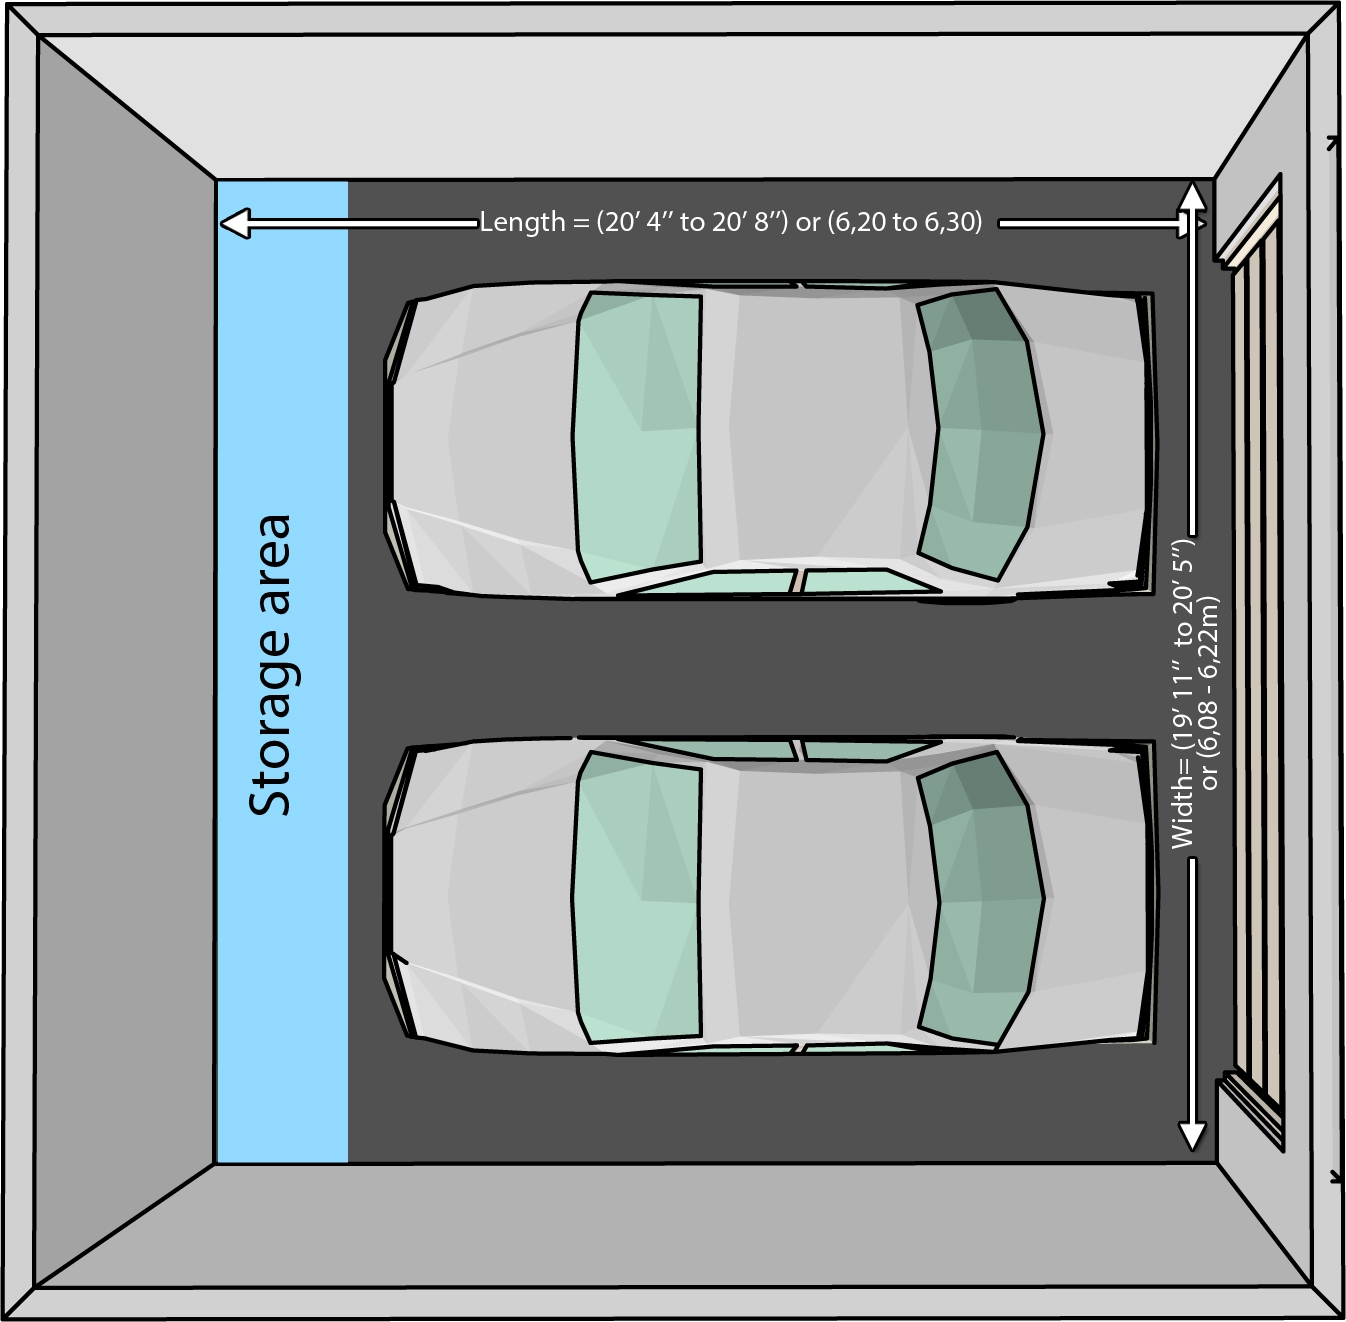 charming dimensions of two car garage 4 terrific size of a 2 car garage best exceptional 2 car garage door size 13